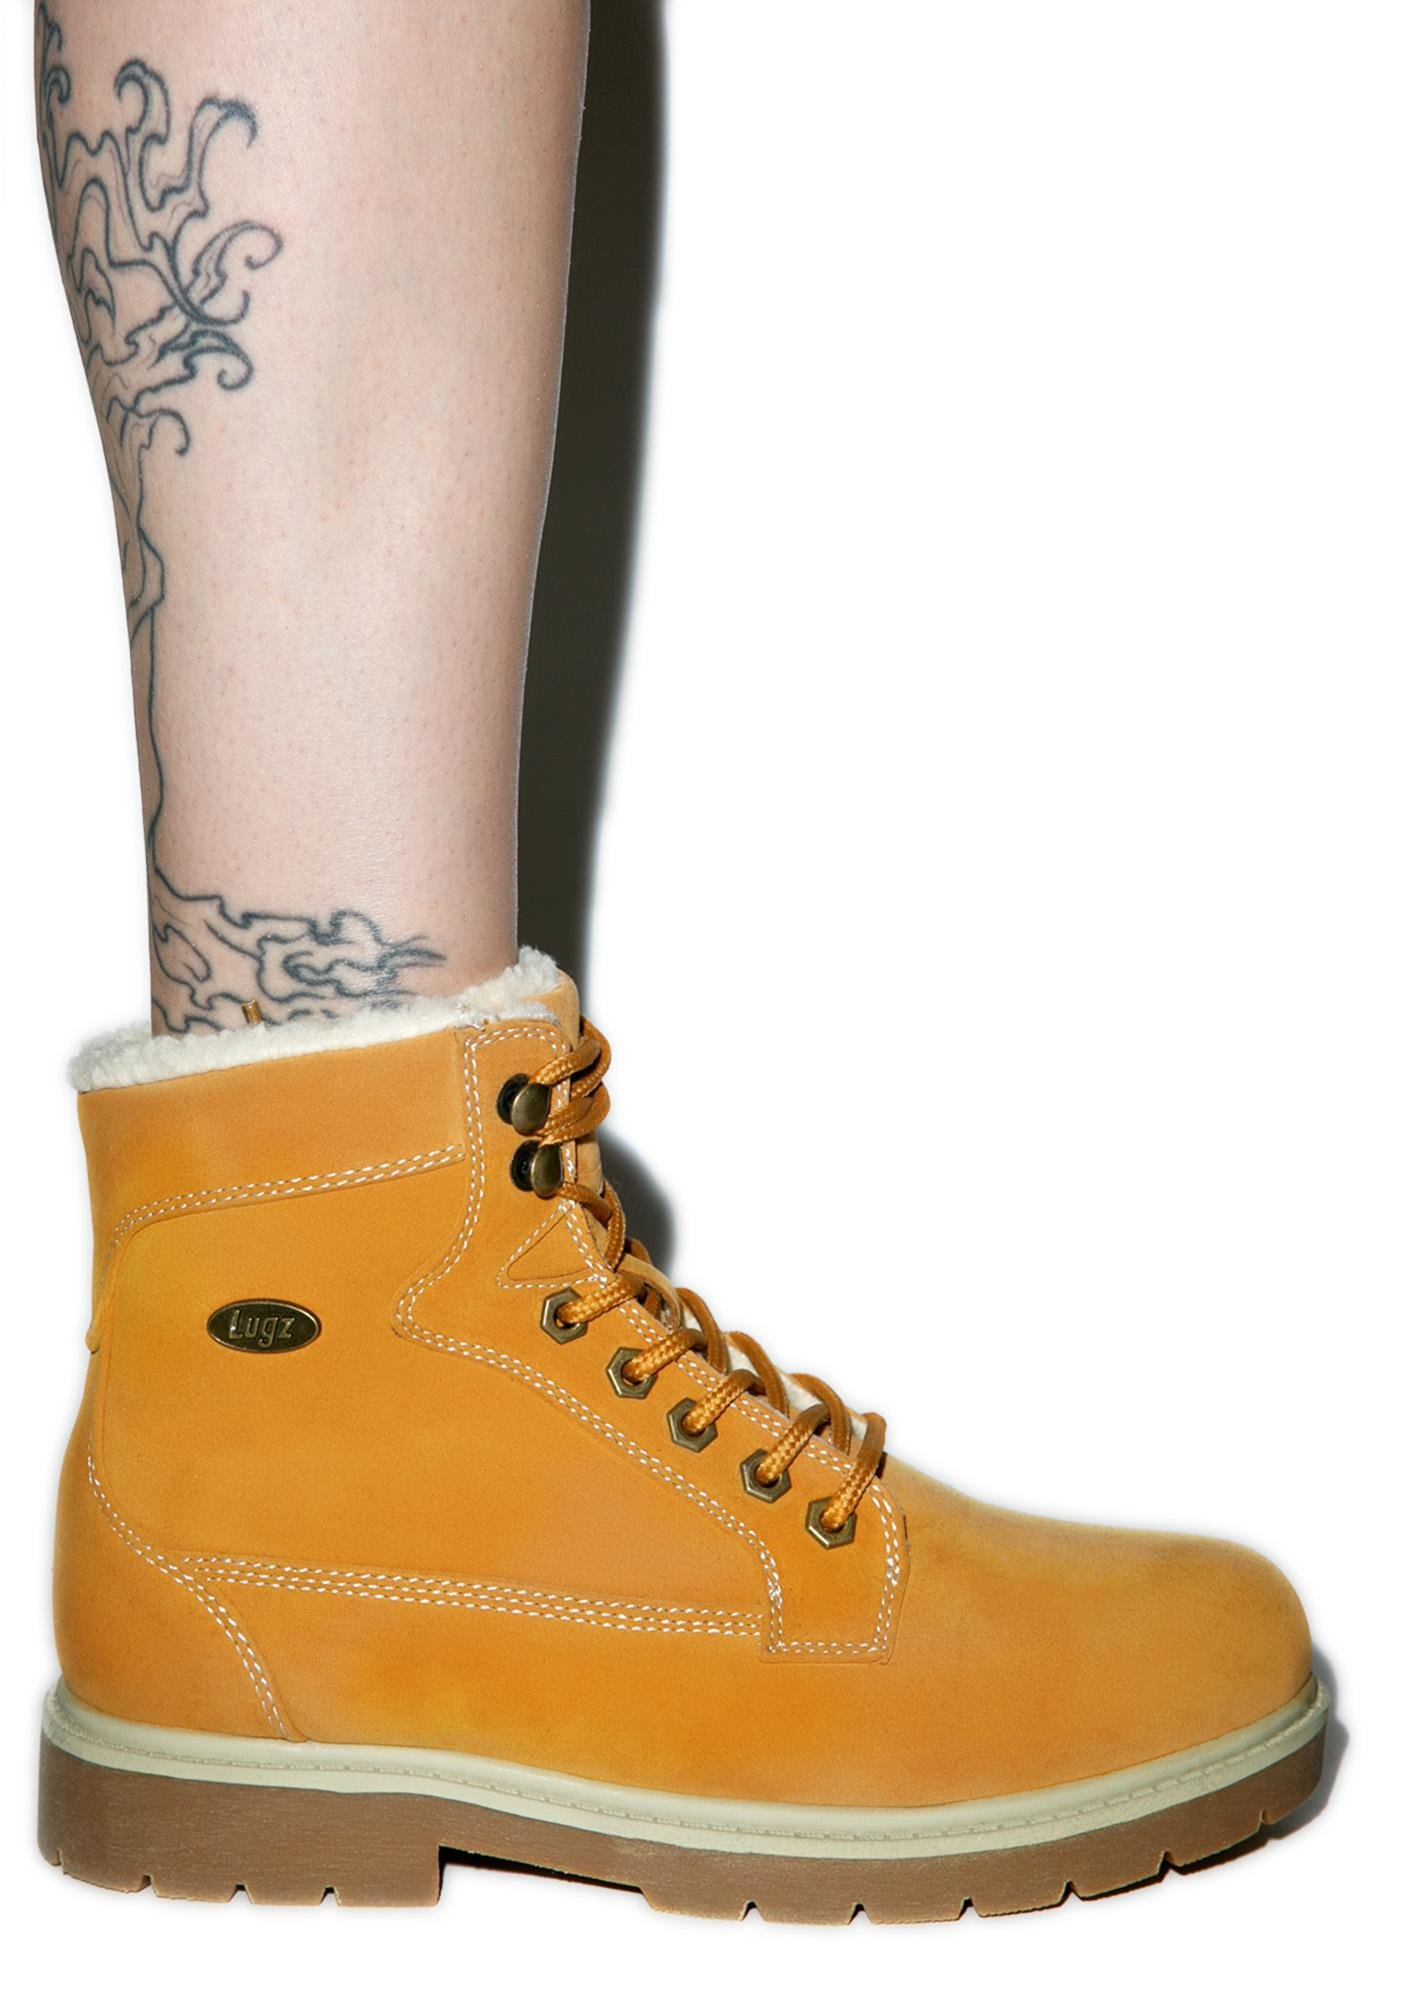 Lugz Workers Regiment High Fleece Boots